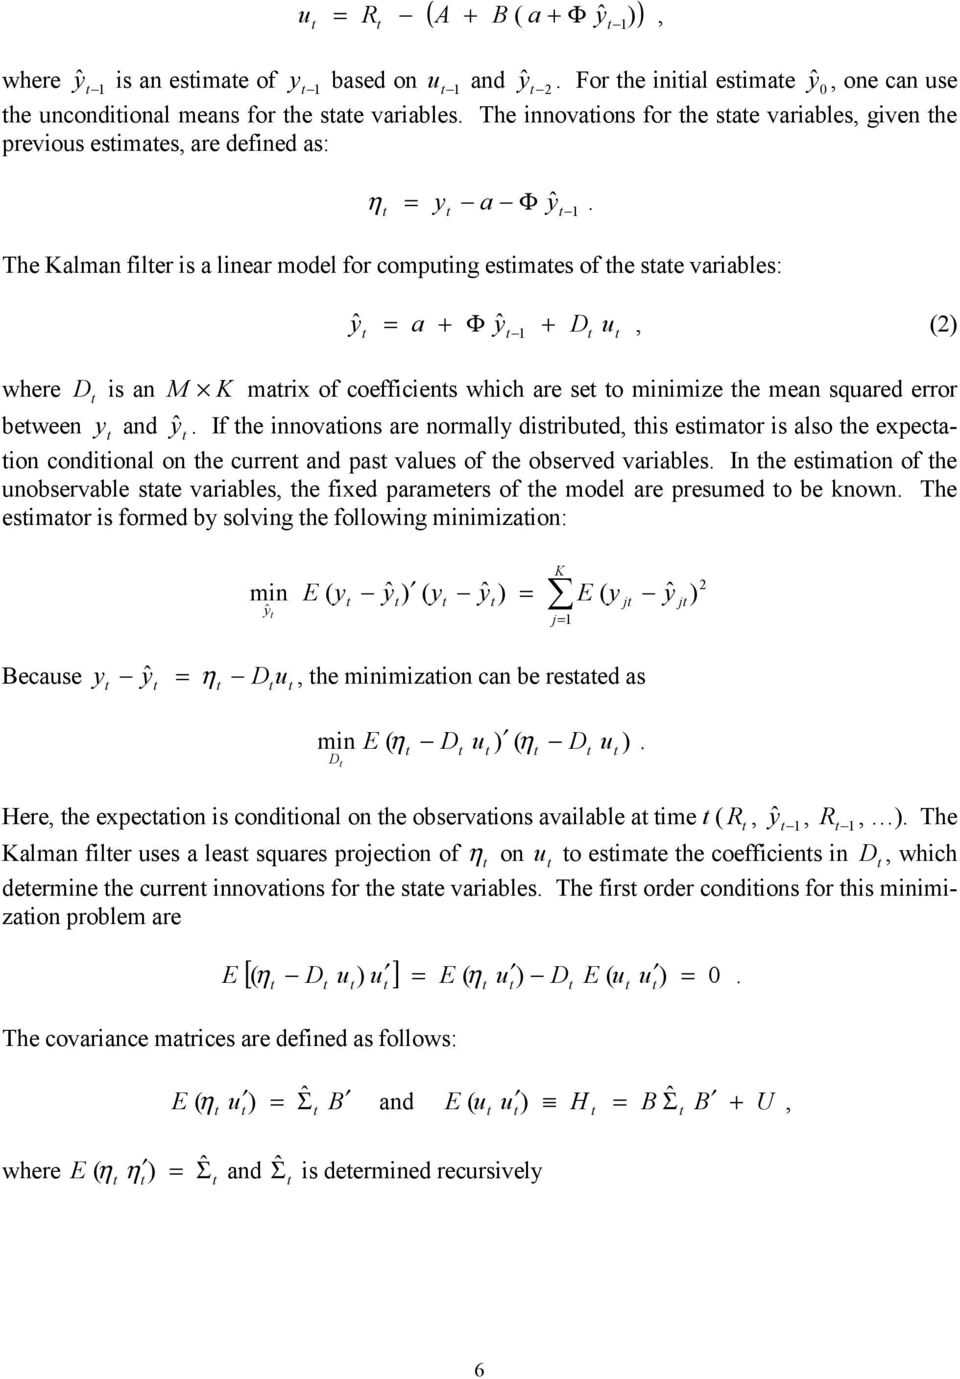 The Kalman filer is a linear model for compuing esimaes of he sae variables: y ˆ ˆ + D u, () a + Φ y where beween D is an y and M K marix of coefficiens which are se o minimize he mean squared error